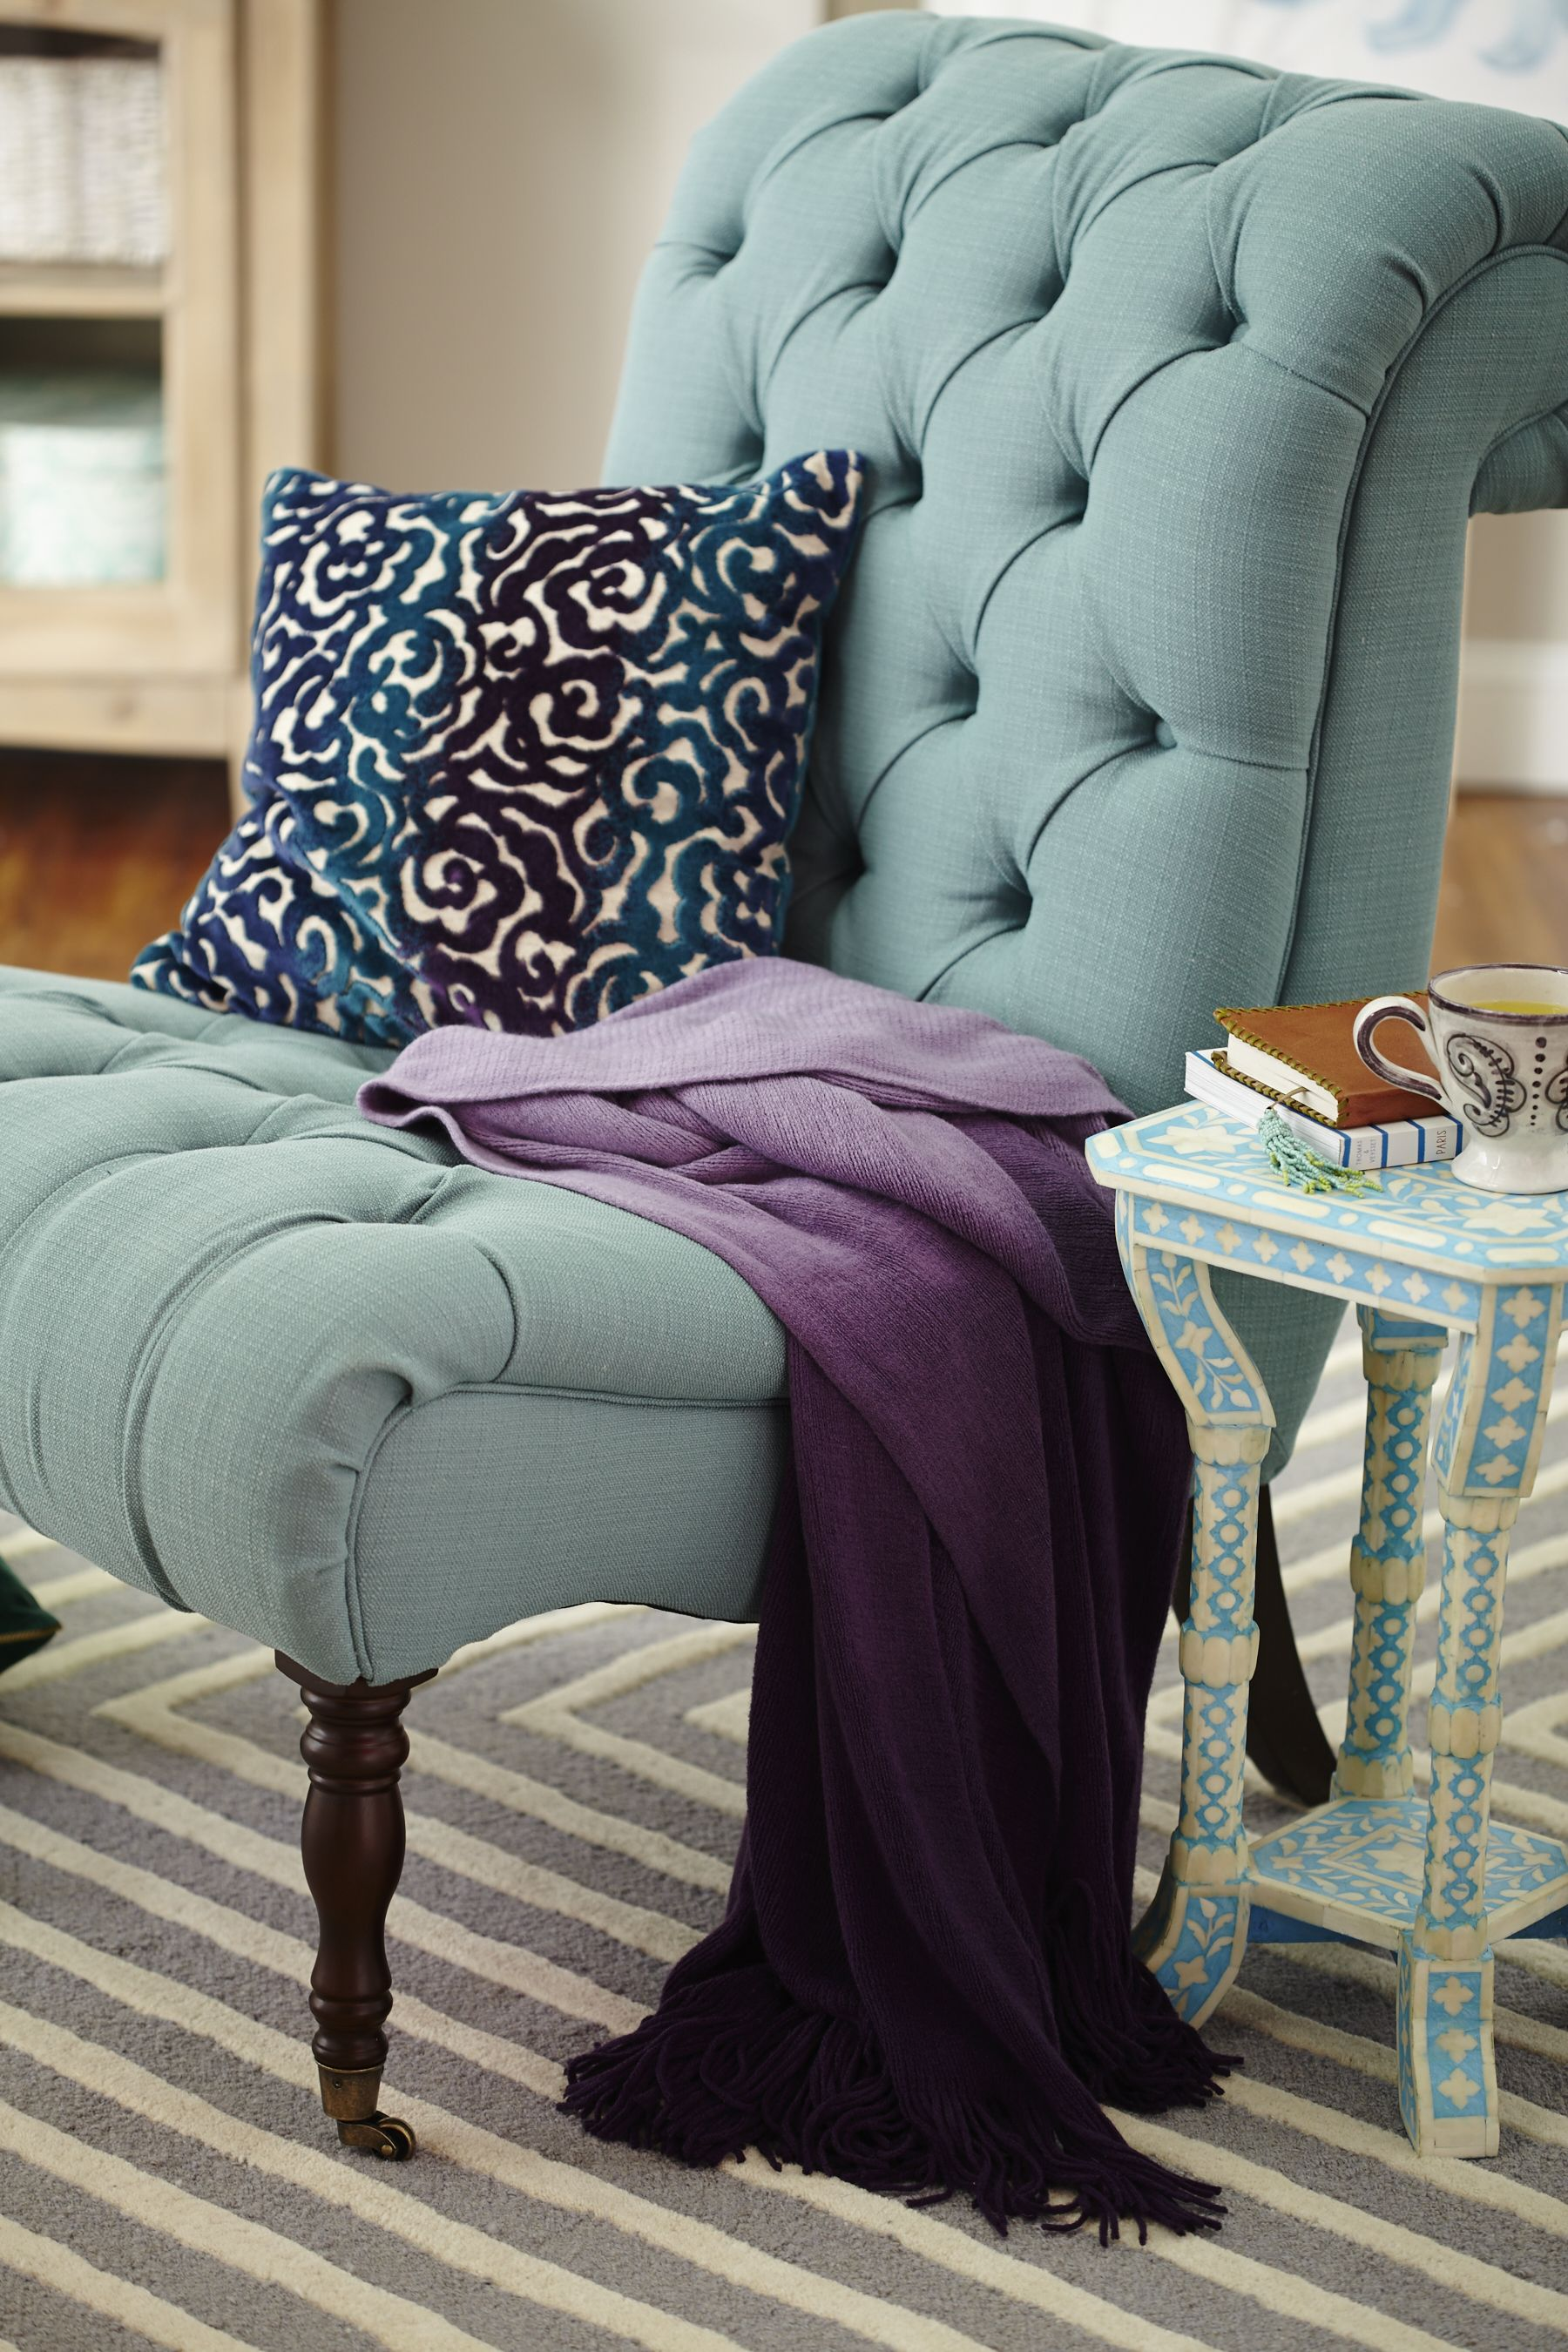 Sitting pretty at a perfect price is #HomeGoodsHappy!  Any corner of your home can turn into your favorite nook with a pretty tufted chair, detailed pillow and ombre throw. Find more design inspiration on our blog!